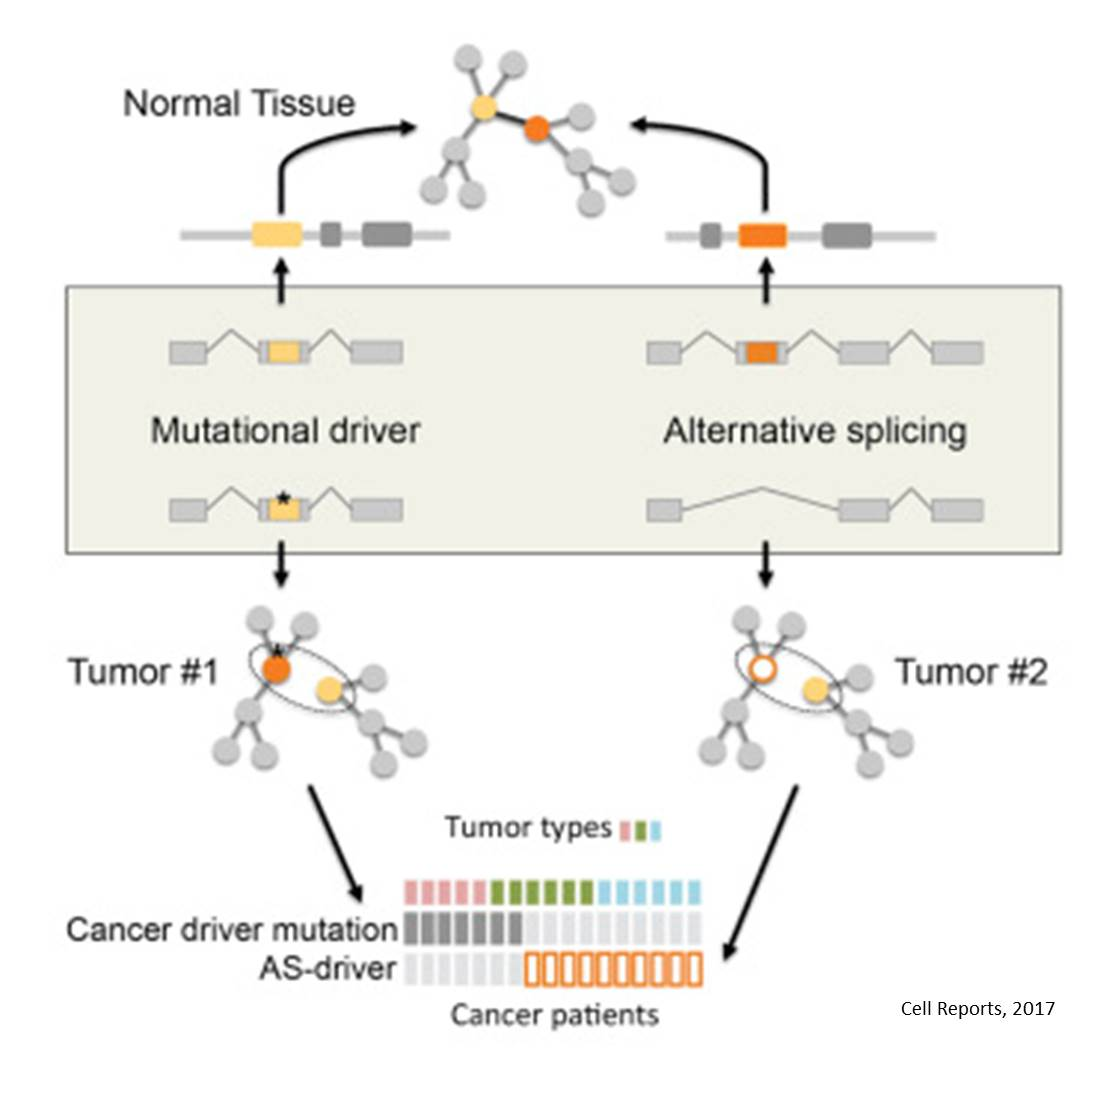 Can alternative splicing lead to cancer?